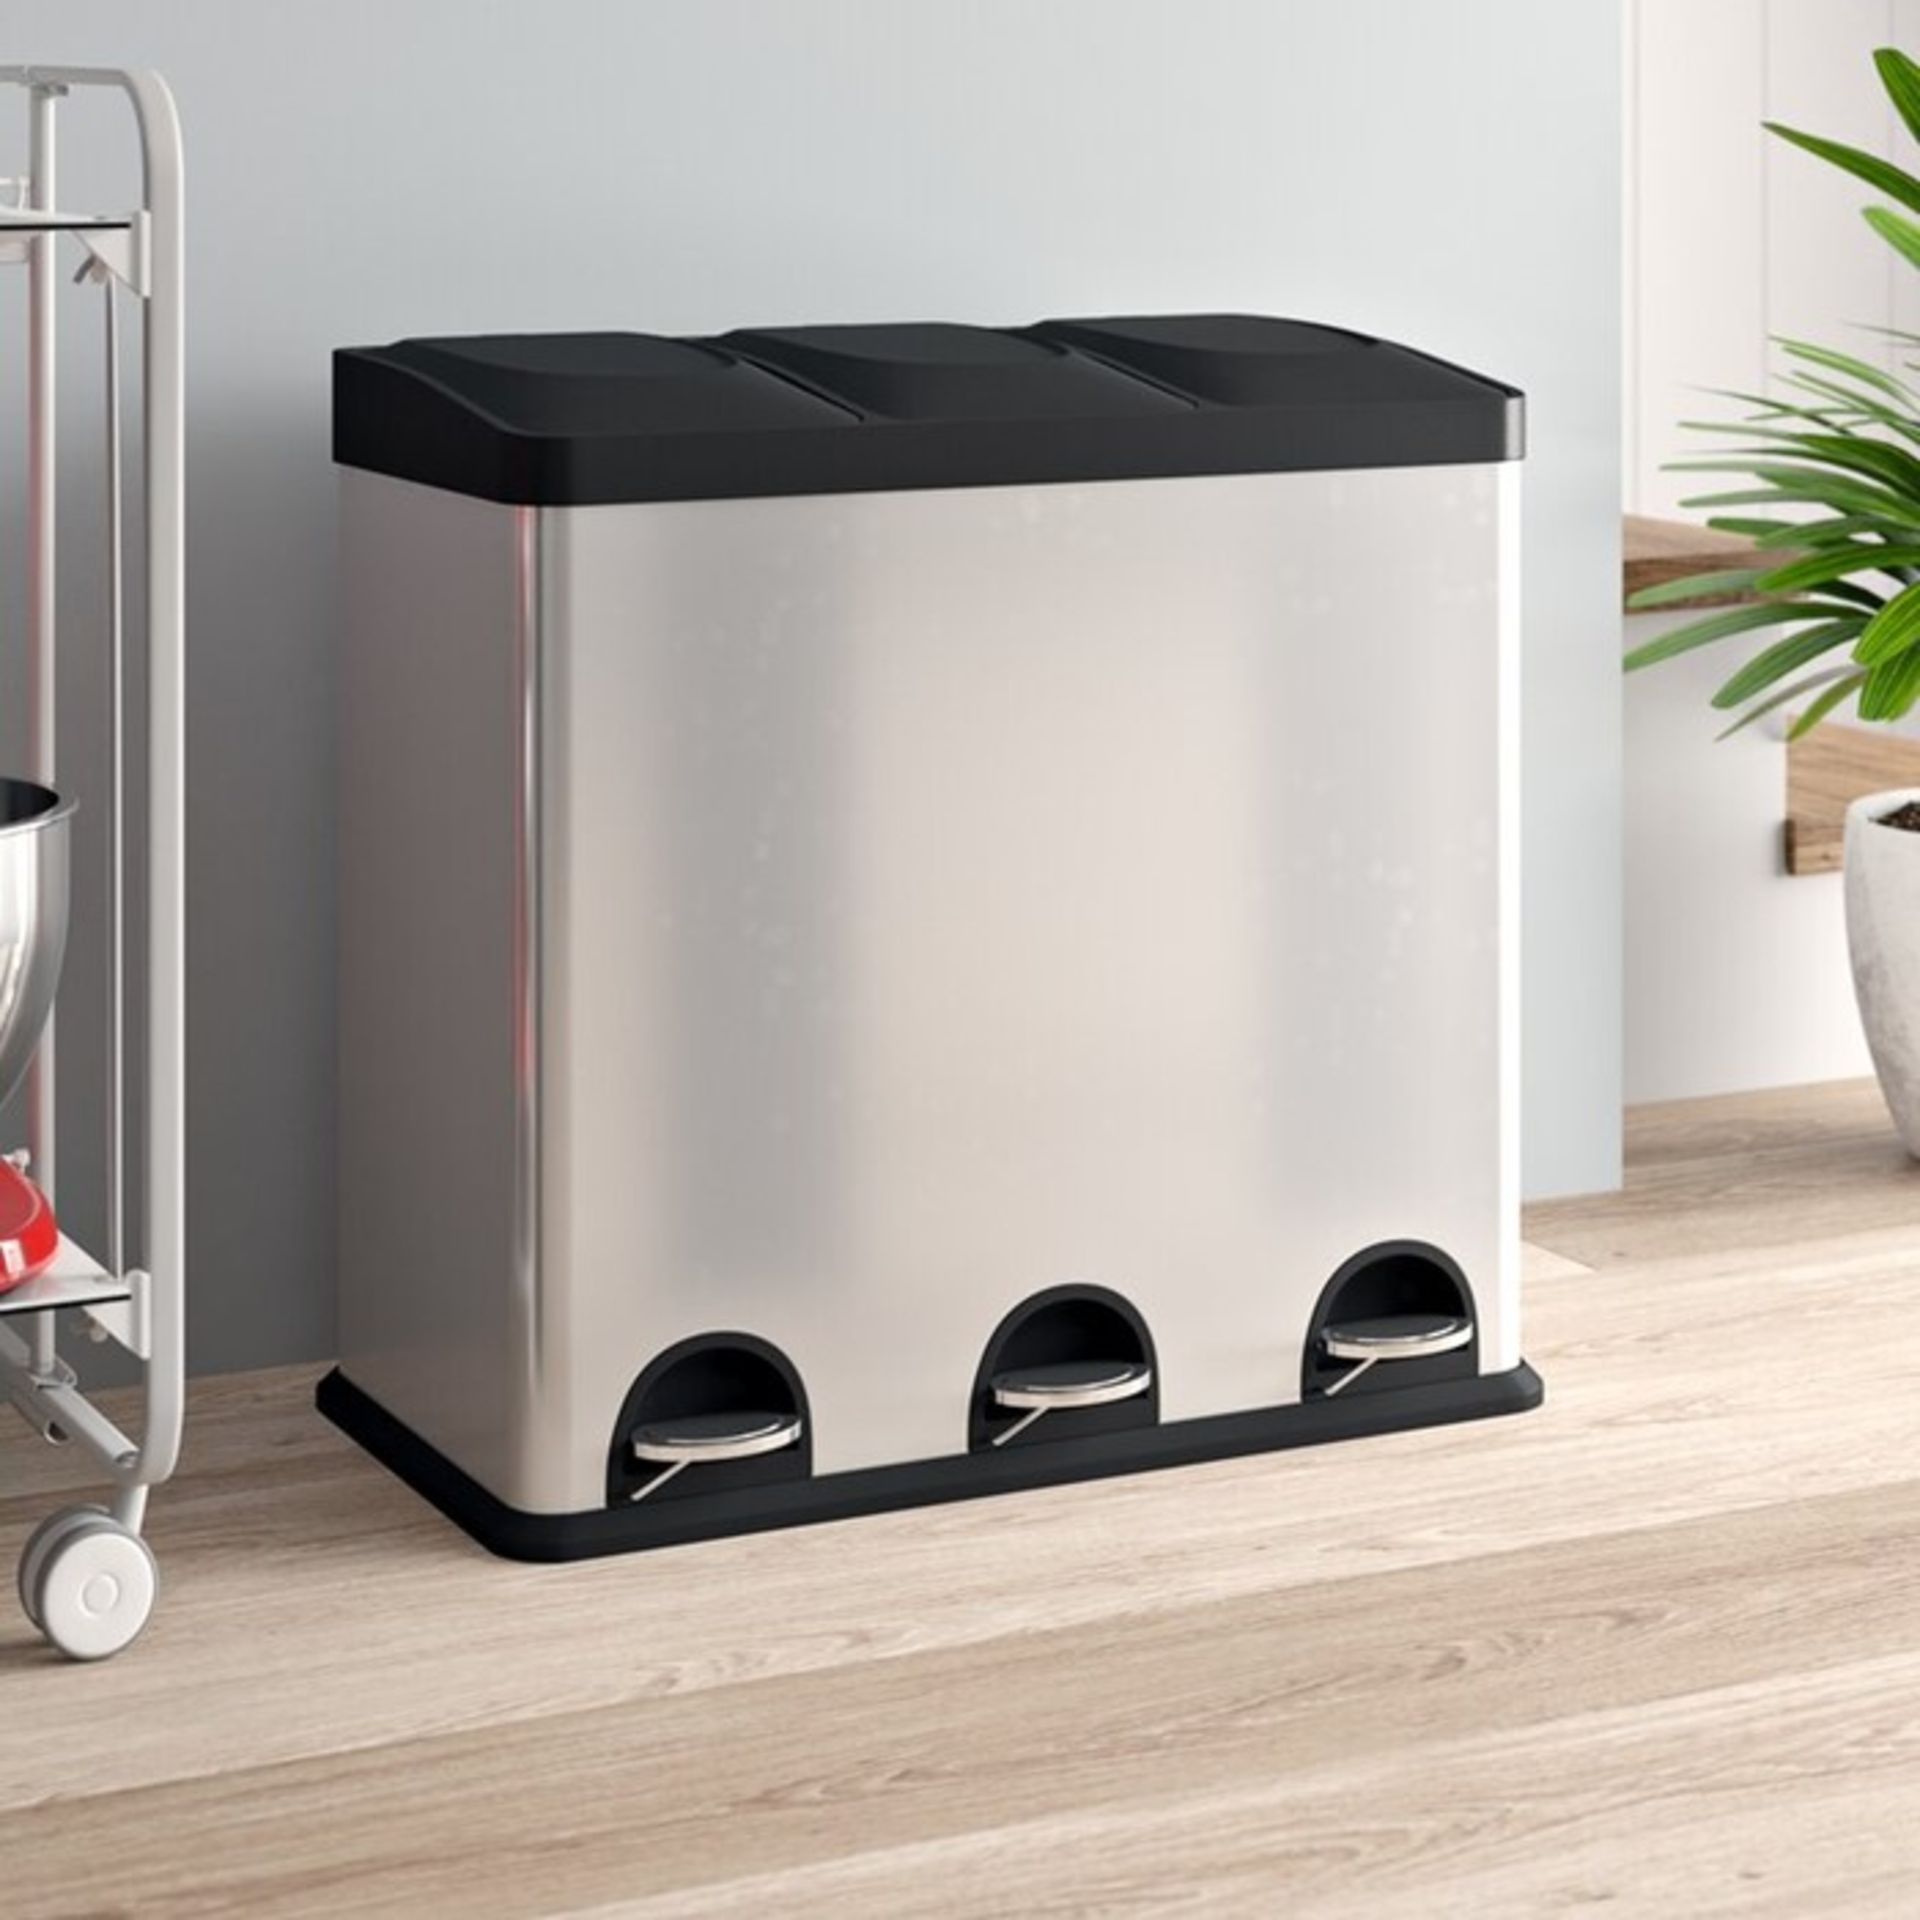 Symple Stuff, Kitchen Stainless Steel 54 Litre Step On Multi-Compartments Rubbish and Recycle